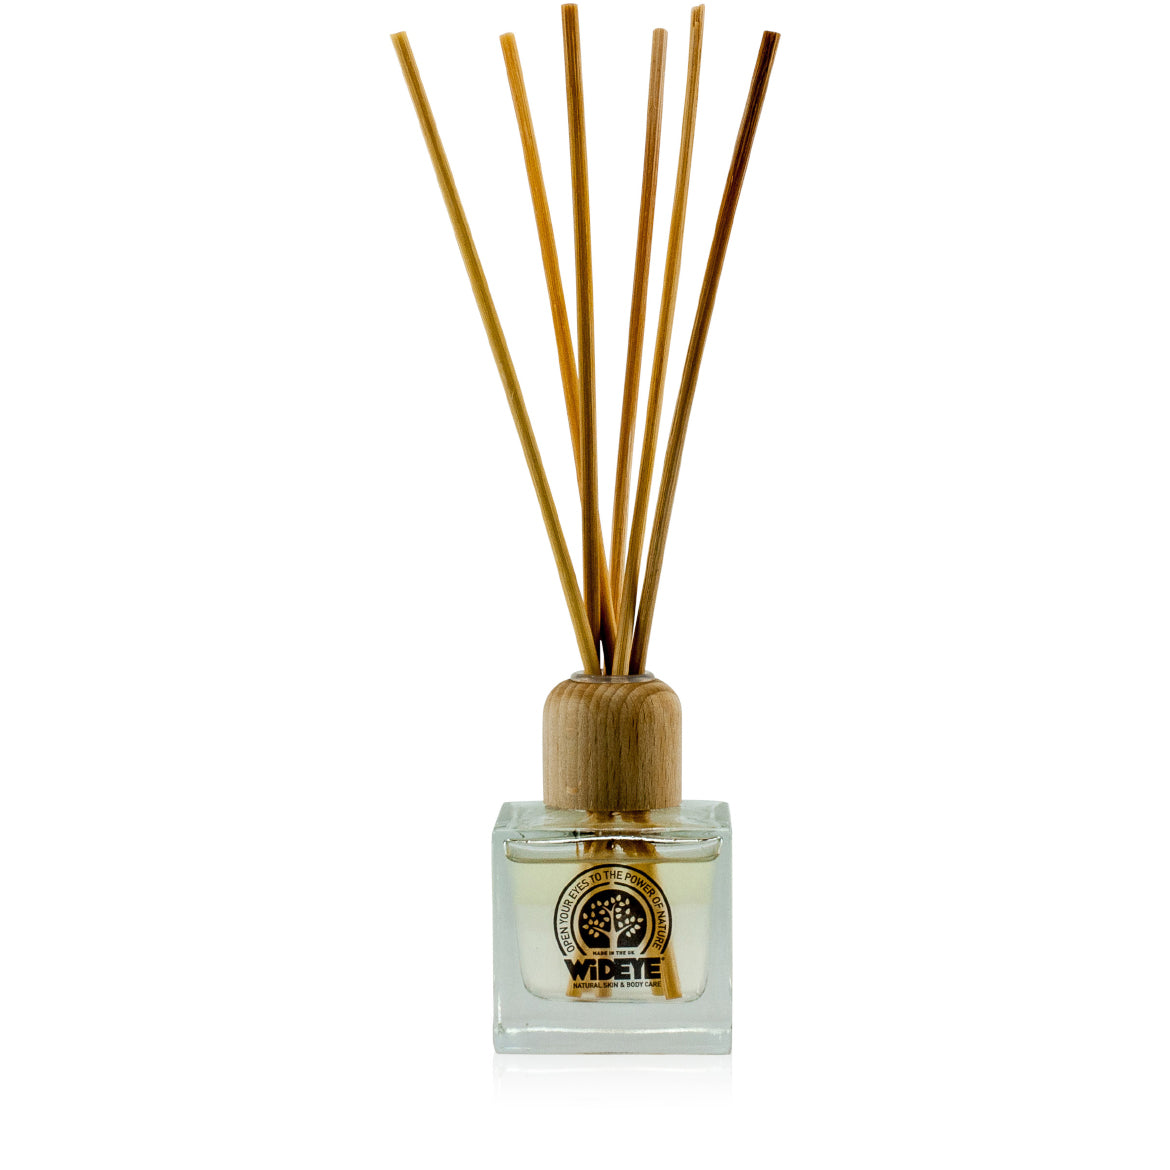 Natural vegan aromatherapy Sun Down reed diffuser in glass jar with natural reeds, handmade by WiDEYE in Rye.